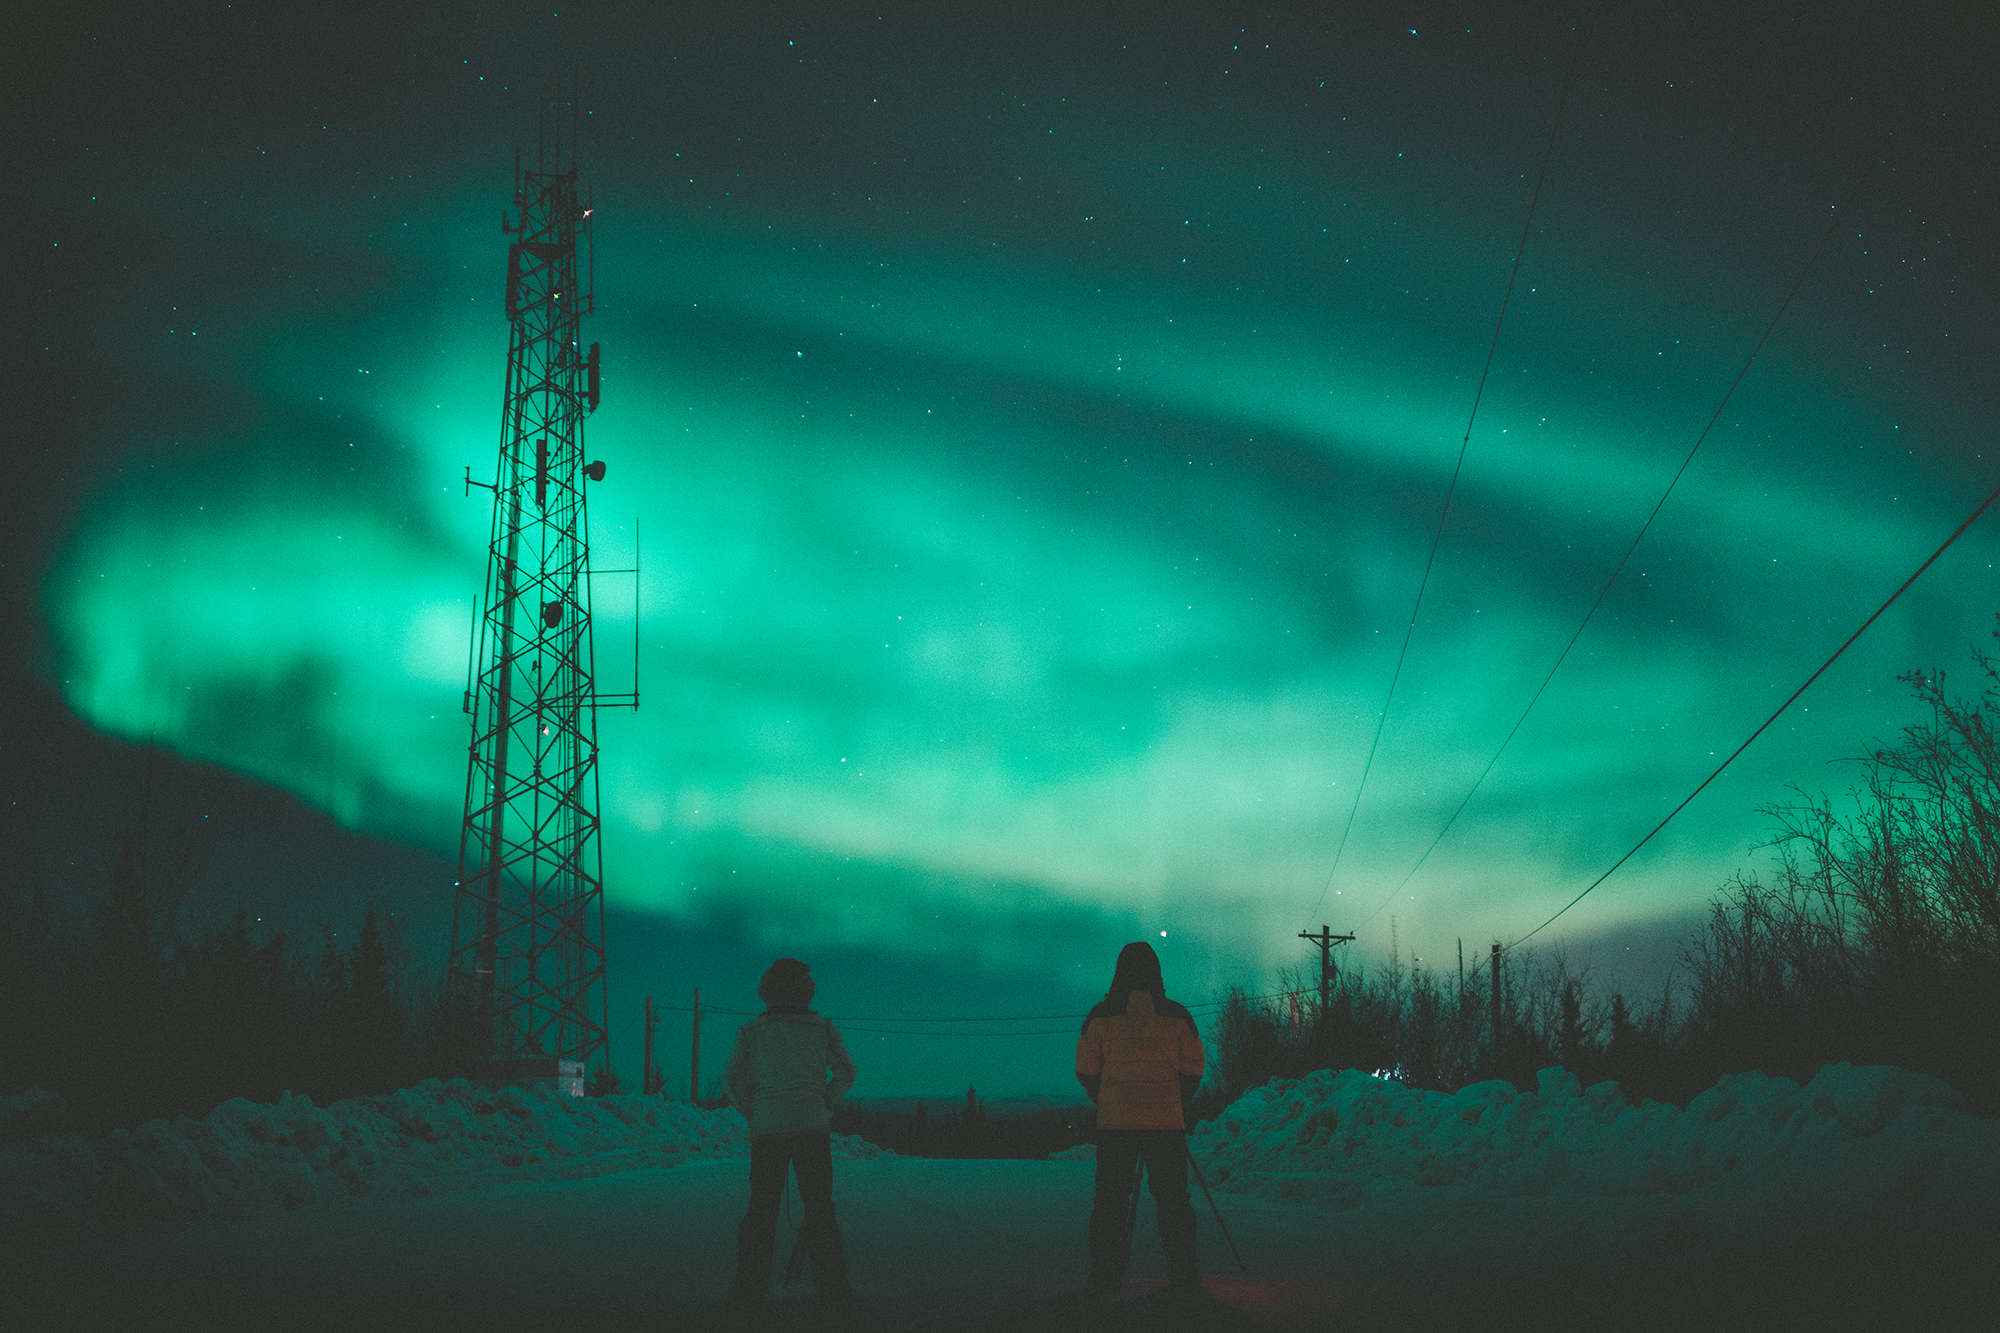 02.07.2016 // drove 7 hours from anchorage, alaska on a whim chasing the aurora and it was totally worth it. definitely changed my life.